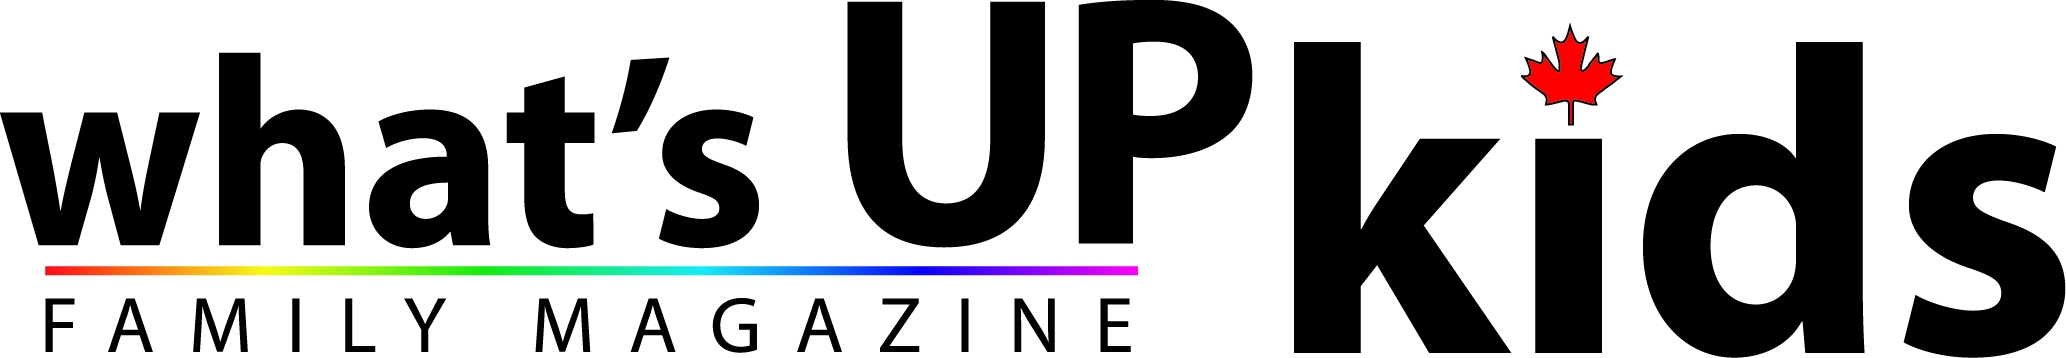 What's Up Kids Magazine Logo